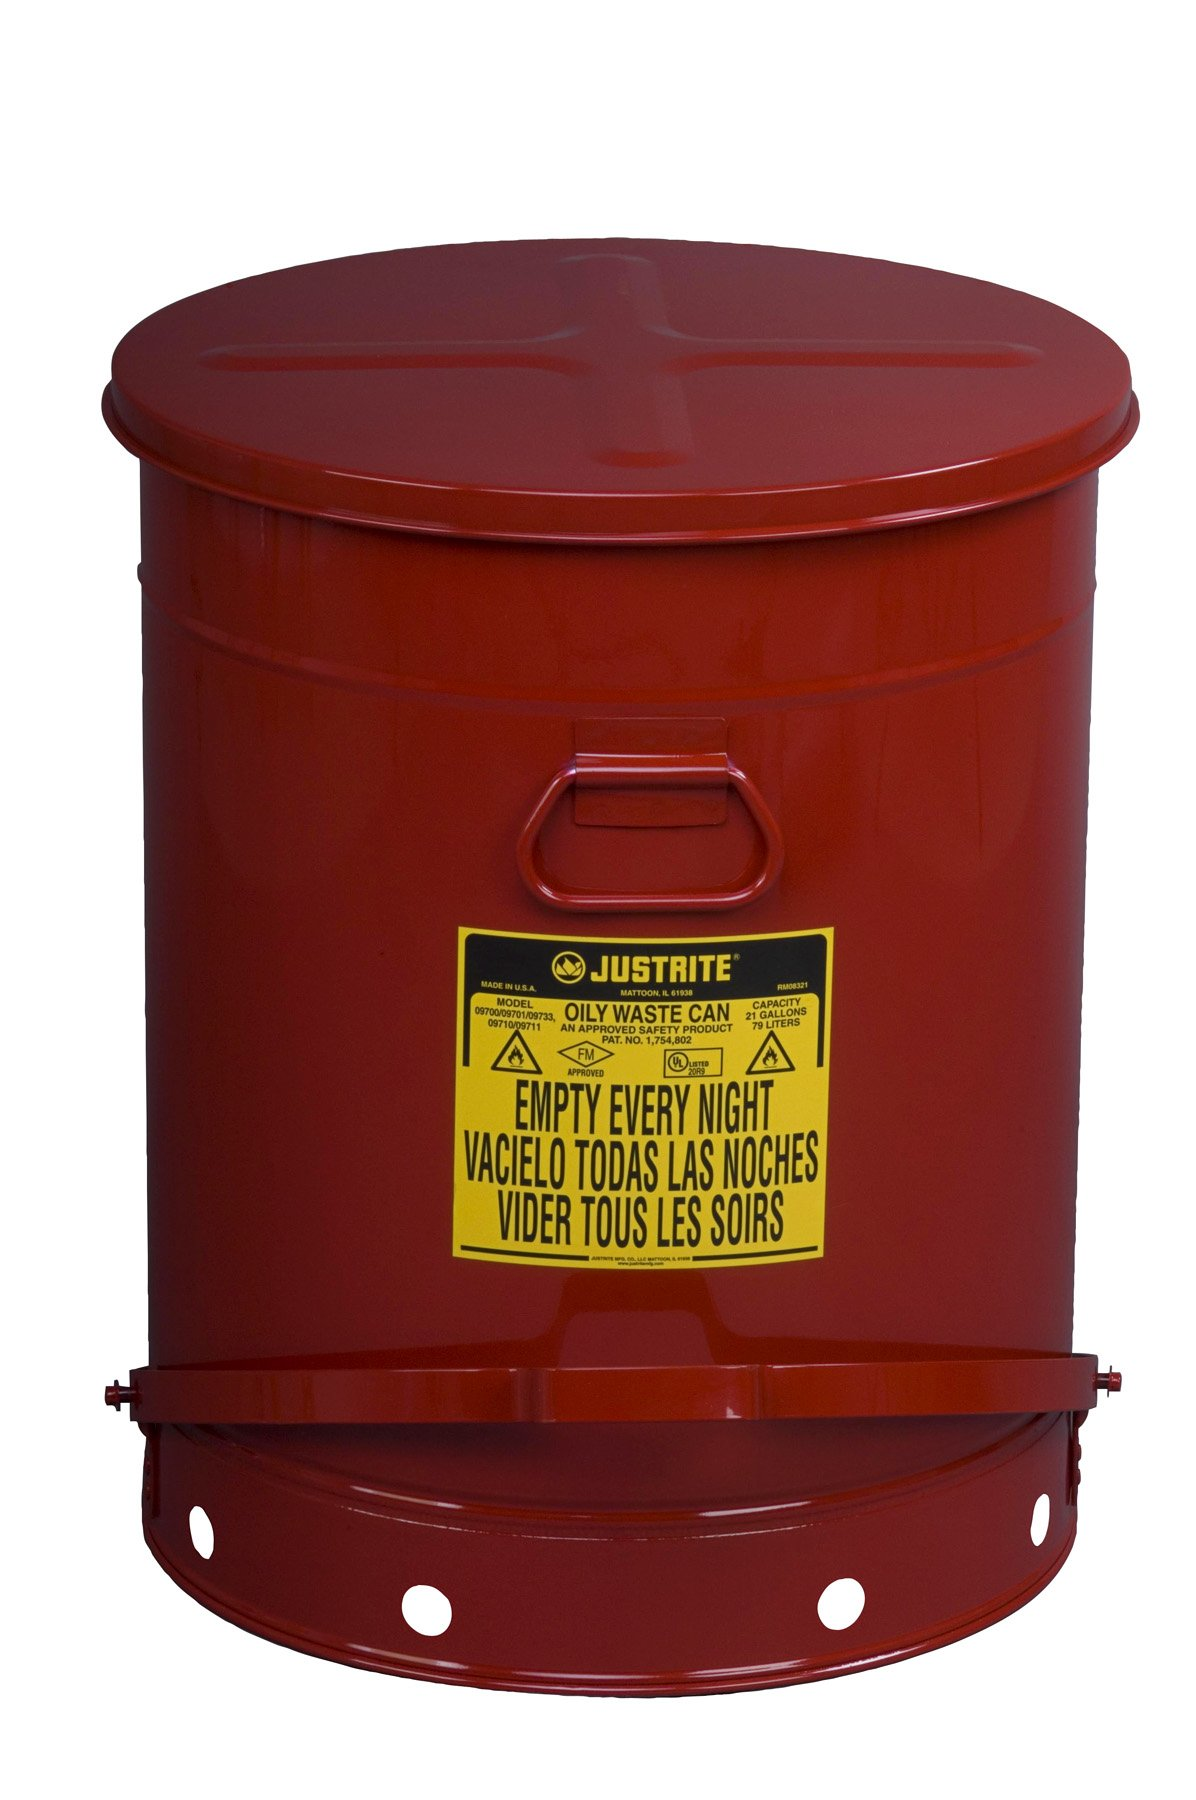 Justrite 09700; Galvanized-steel; Safety cans; For Oily waste; Red; Foot Operated cover; Raised, ventilated Bottom; Reinforced ribs; Self-closing; UL listed; FM approved; Capacity: 21 gal. (79L)